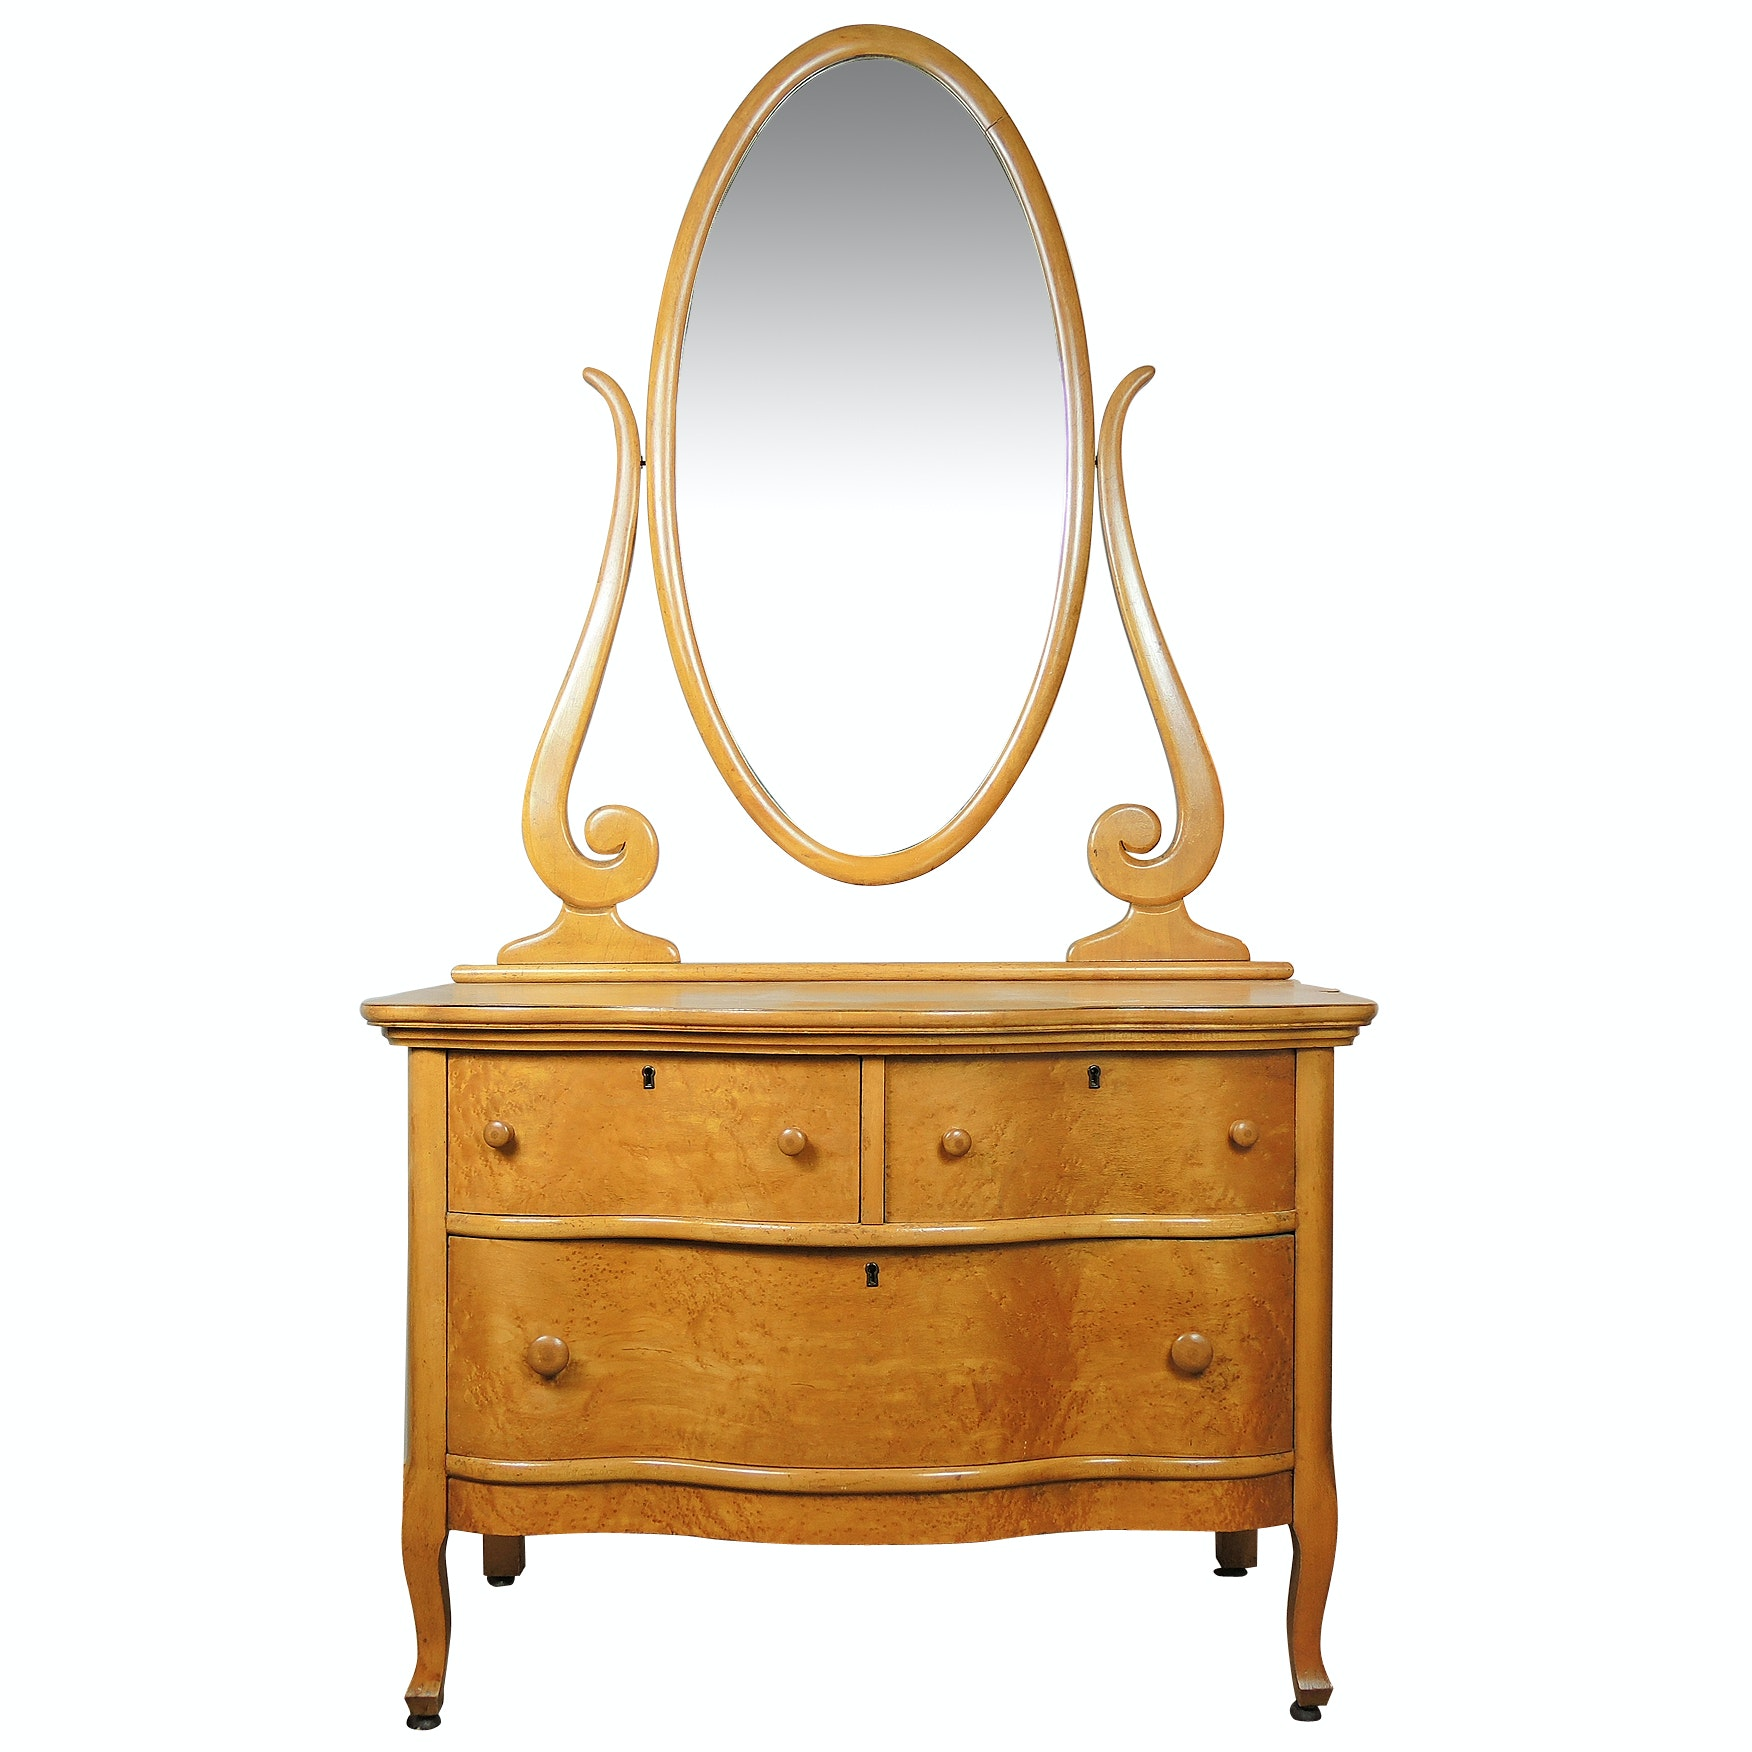 Late Victorian Birdseye Maple Dresser with Mirror by Upham Mfg. Early 20th c.